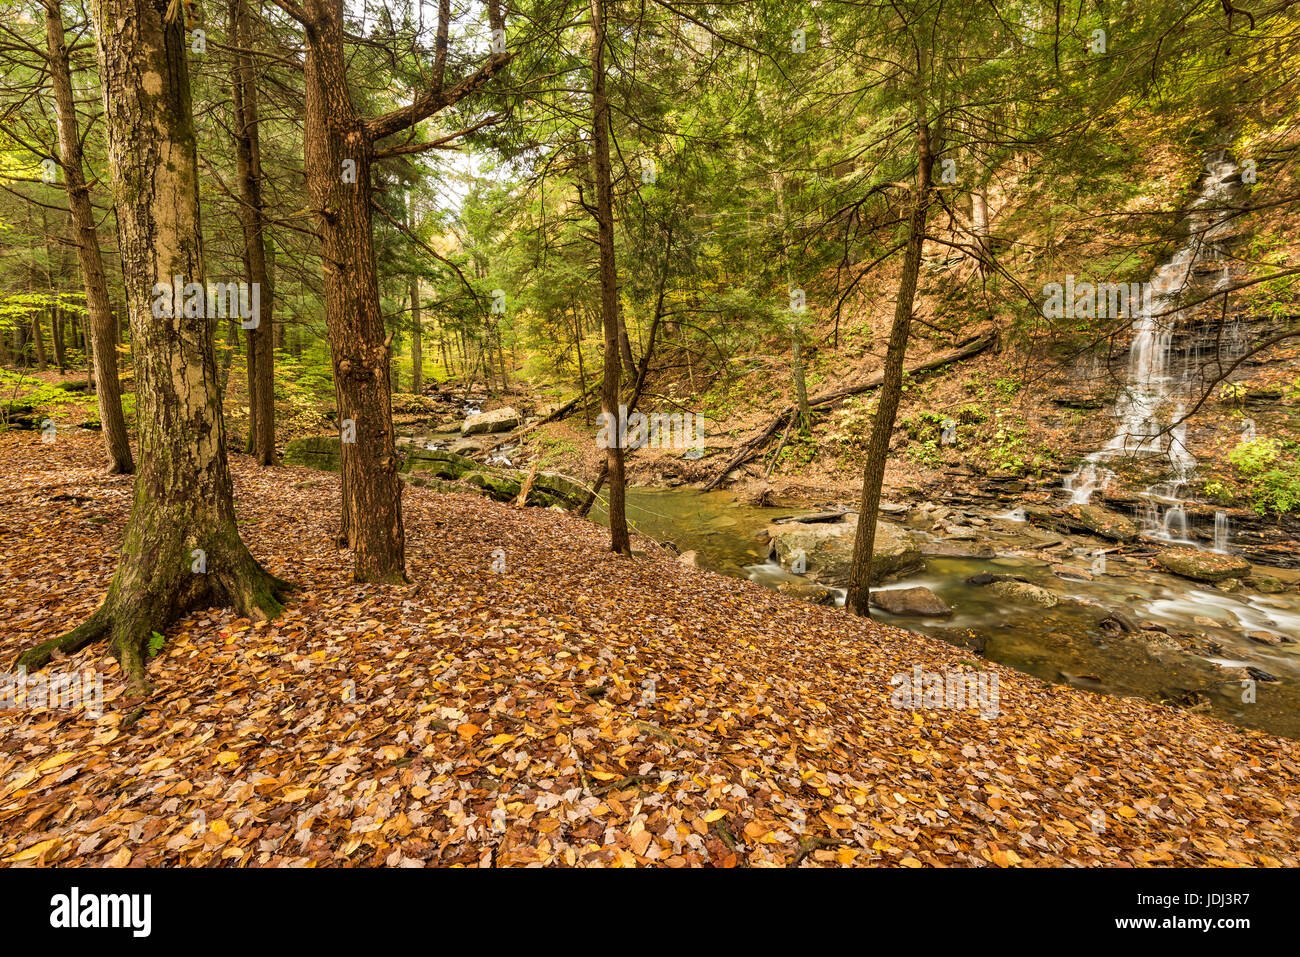 Bridal Veil Falls flows into Stoddard Creek in autumn, Allegany State Park,  Cattaraugus Co., New York - Stock Image